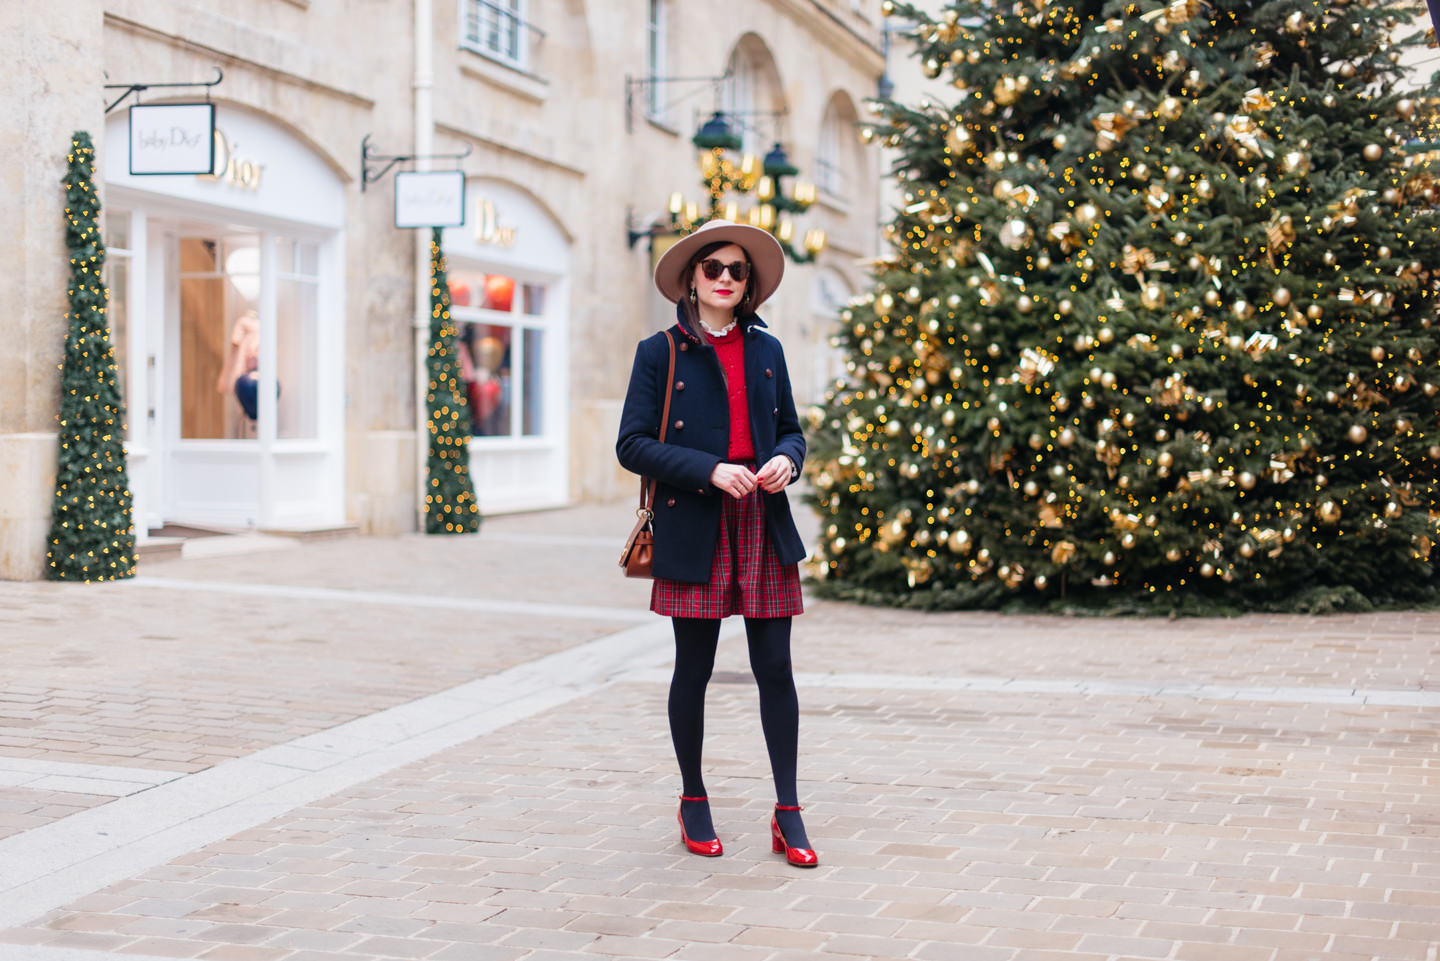 Blog-Mode-And-The-City-Lifestyle-Look-Manteau-Trench-Coat-Village-Royal-6